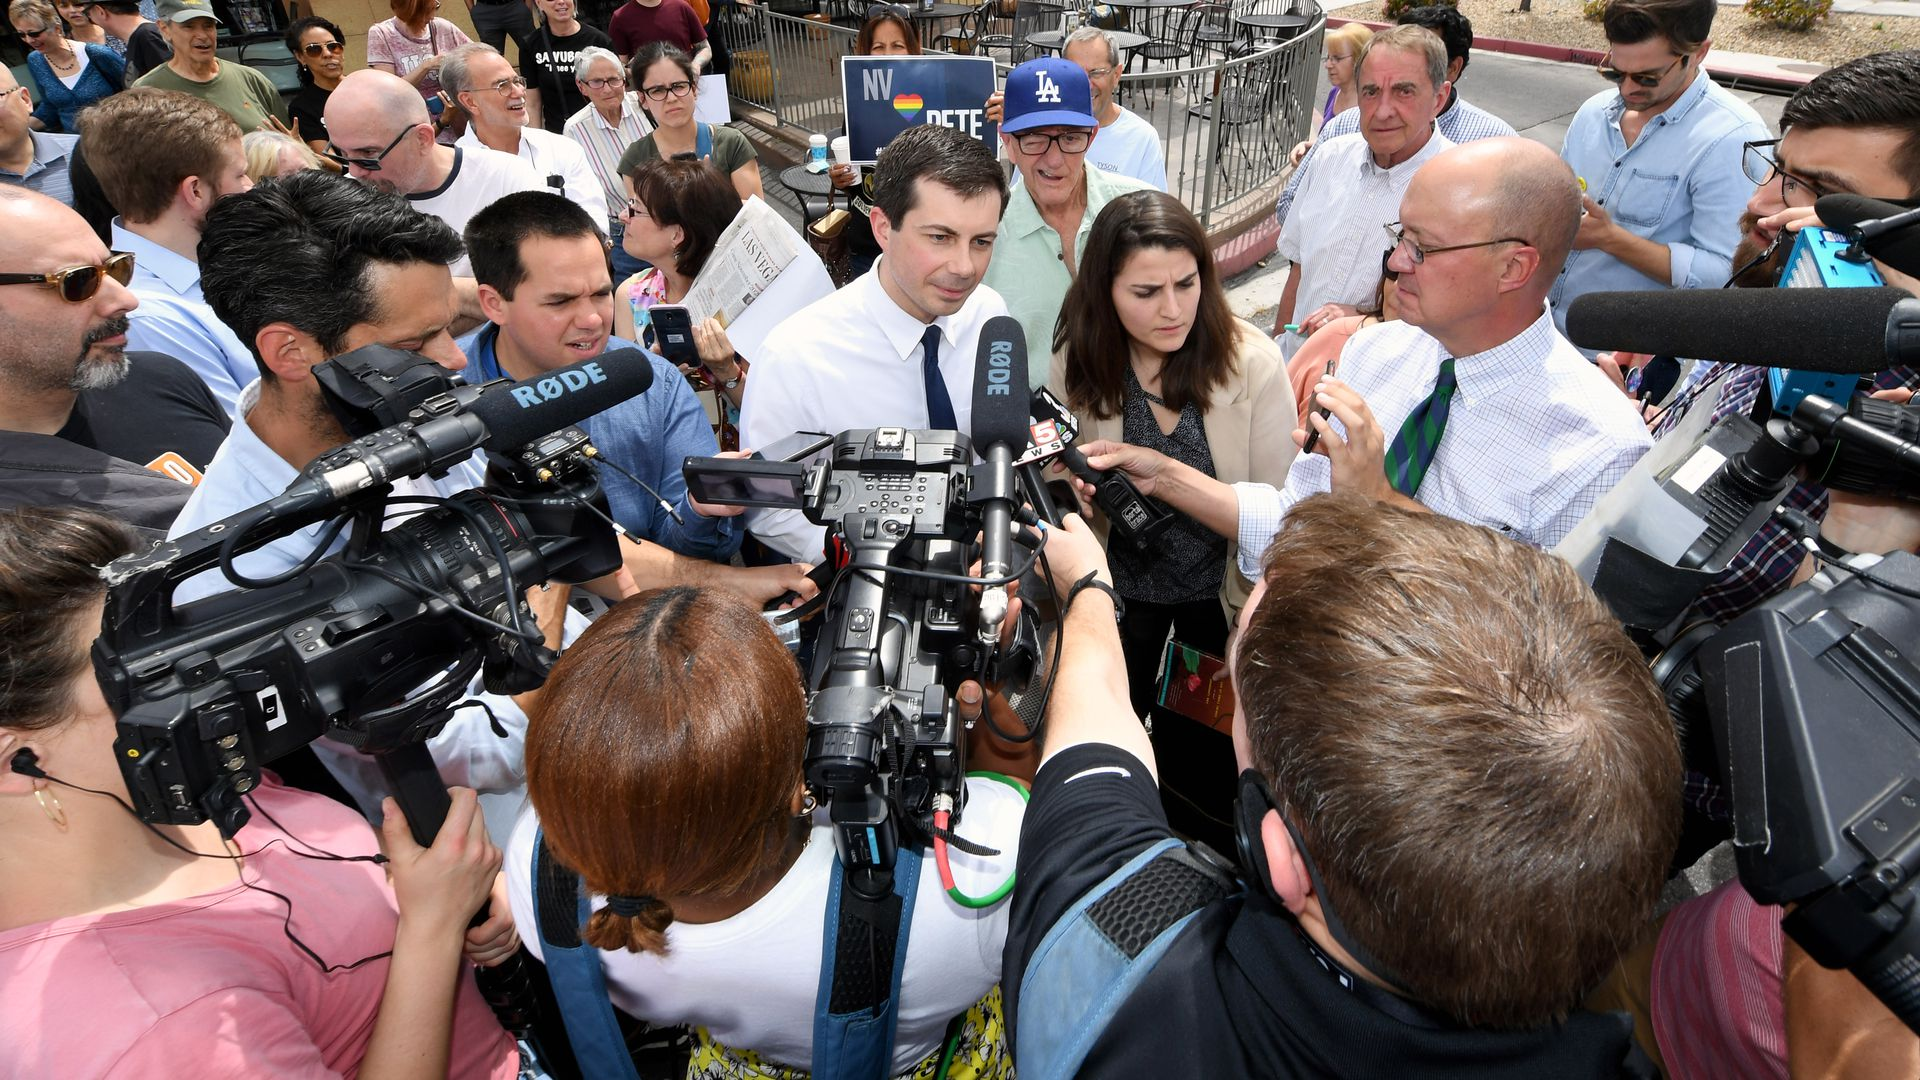 In this image, Pete Buttigieg stands in the center of a crowded ring of reporters who hold microphones towards him.